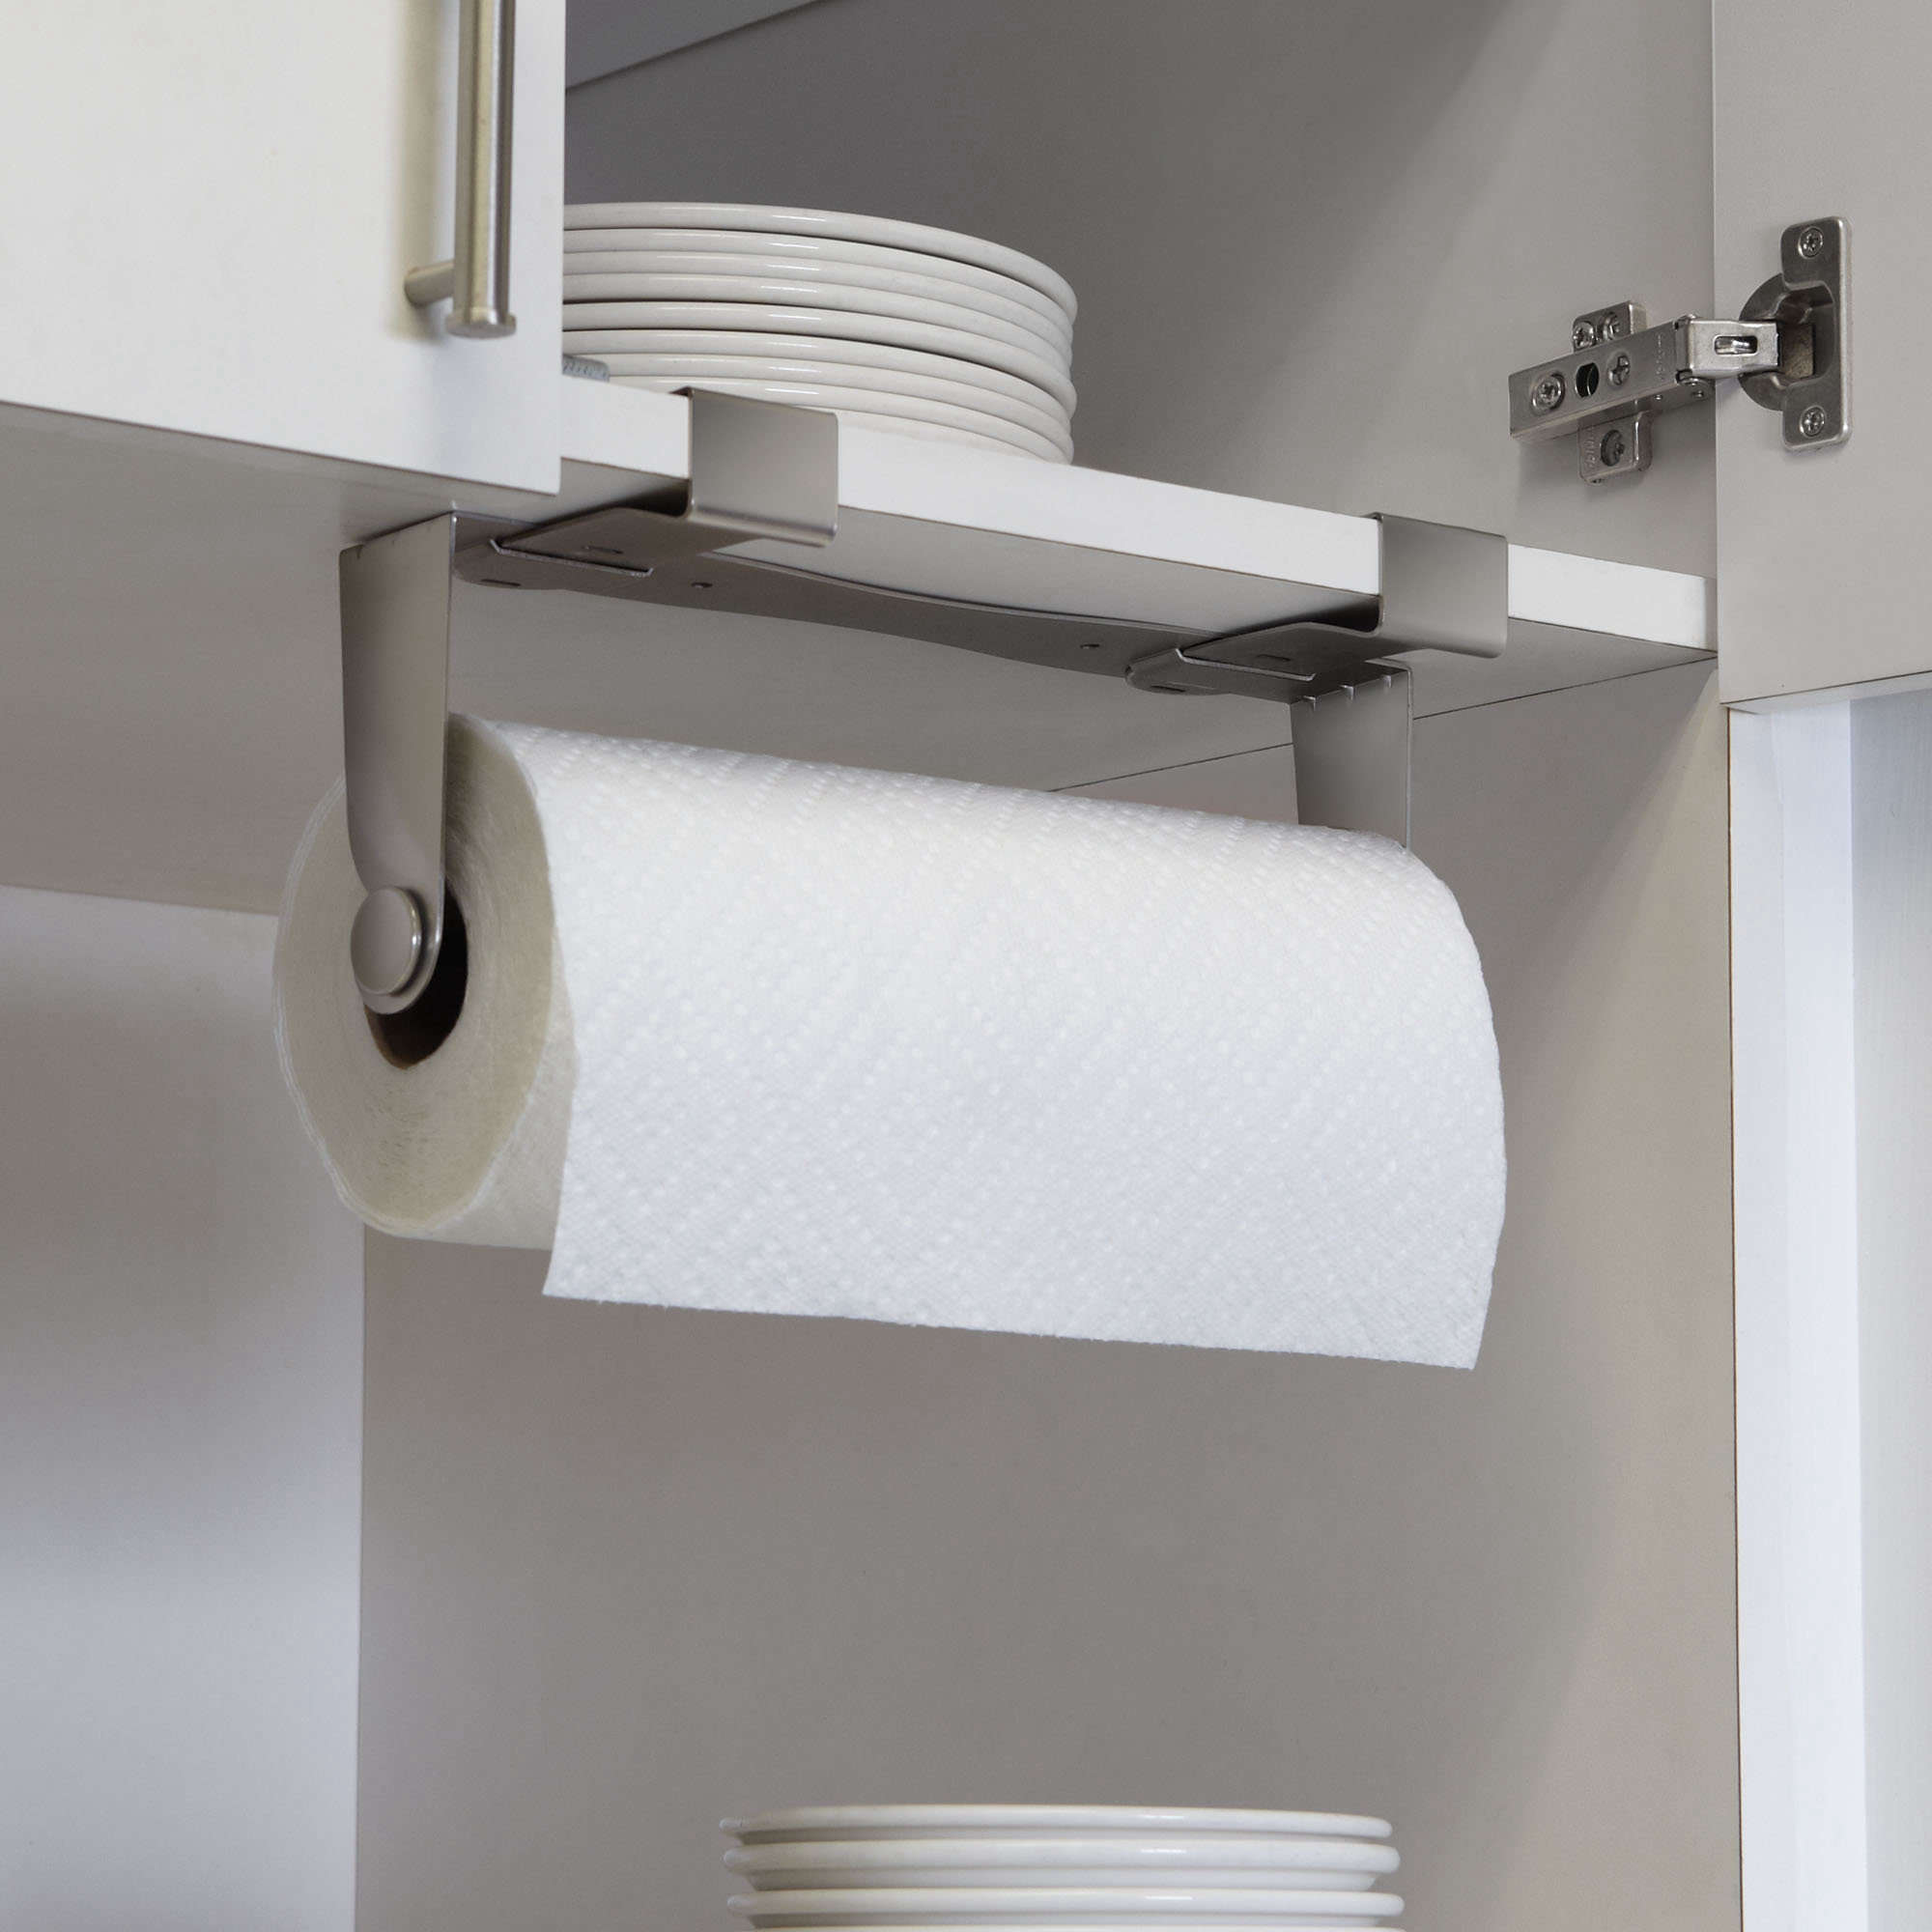 5 Favorites: The No-Drill Instant Paper Towel Holder - Remodelista